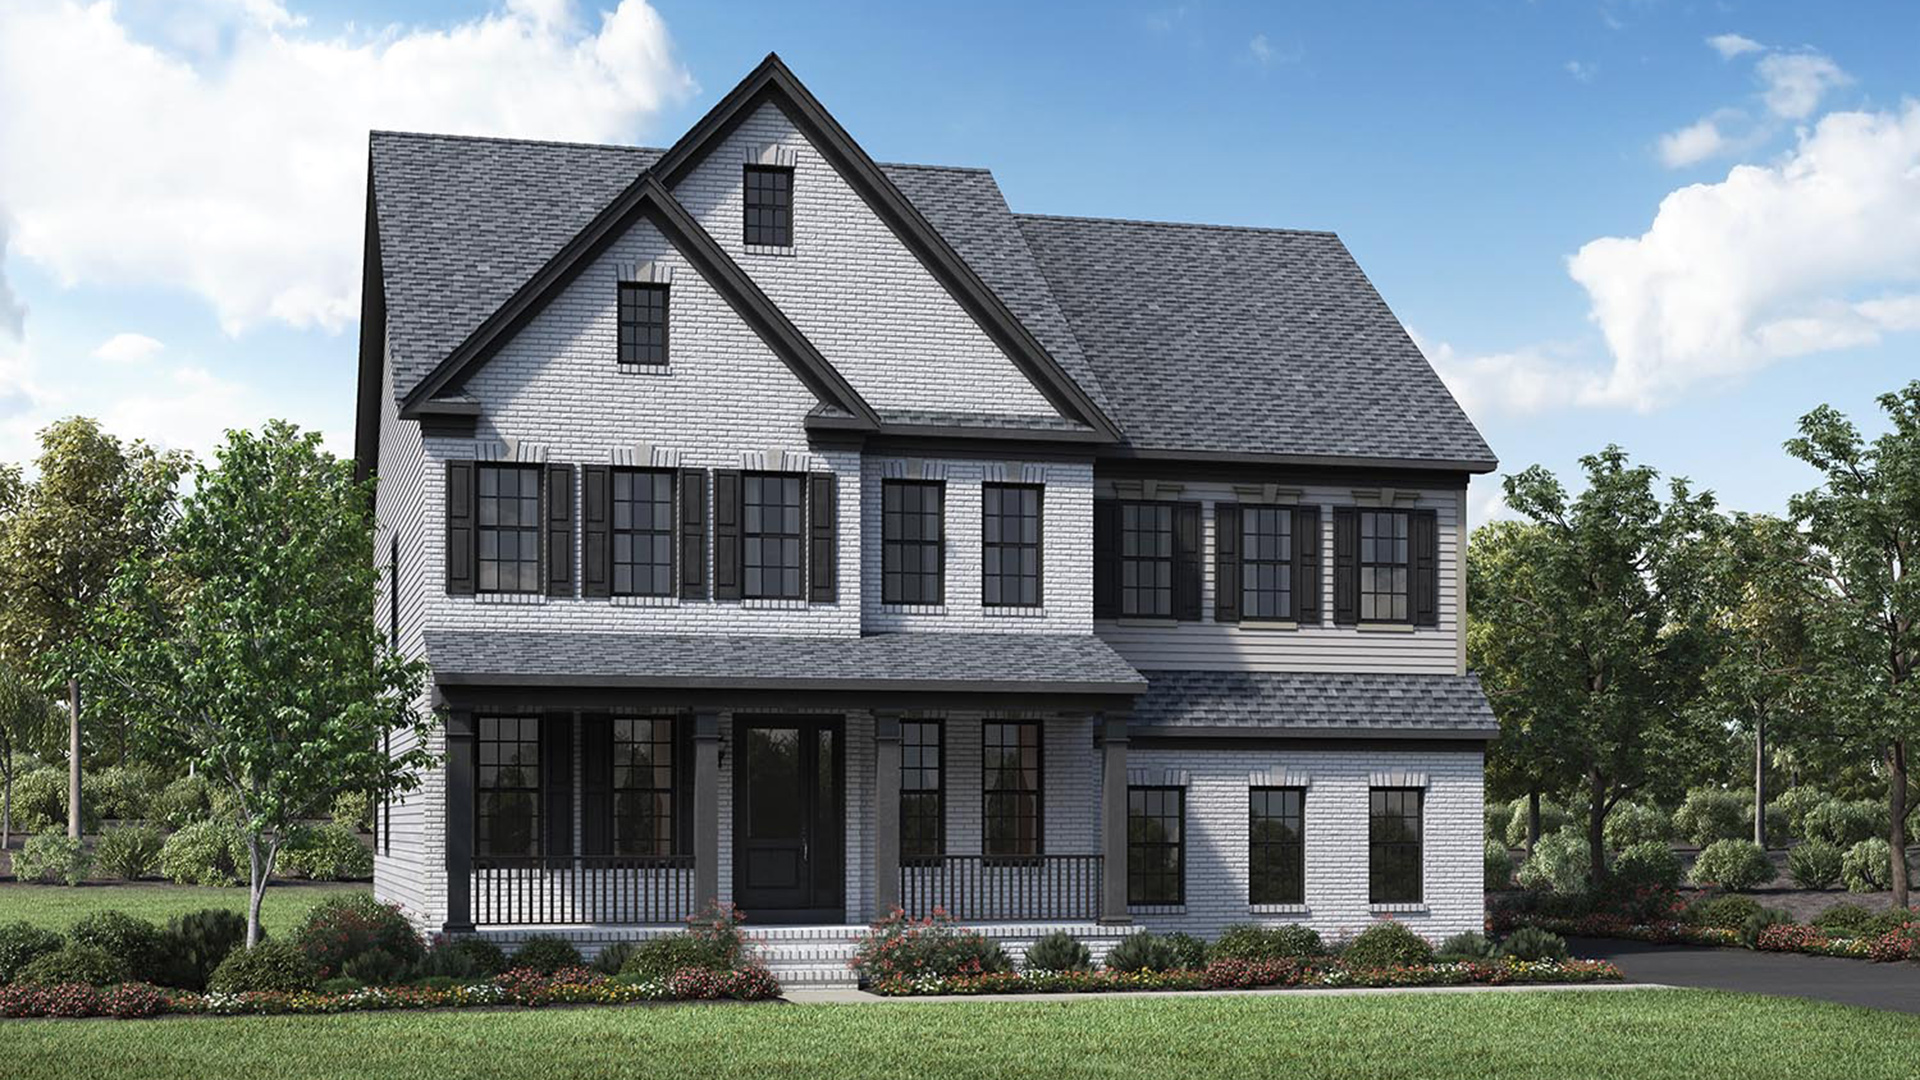 New Luxury Homes For Sale In Gambrills Md